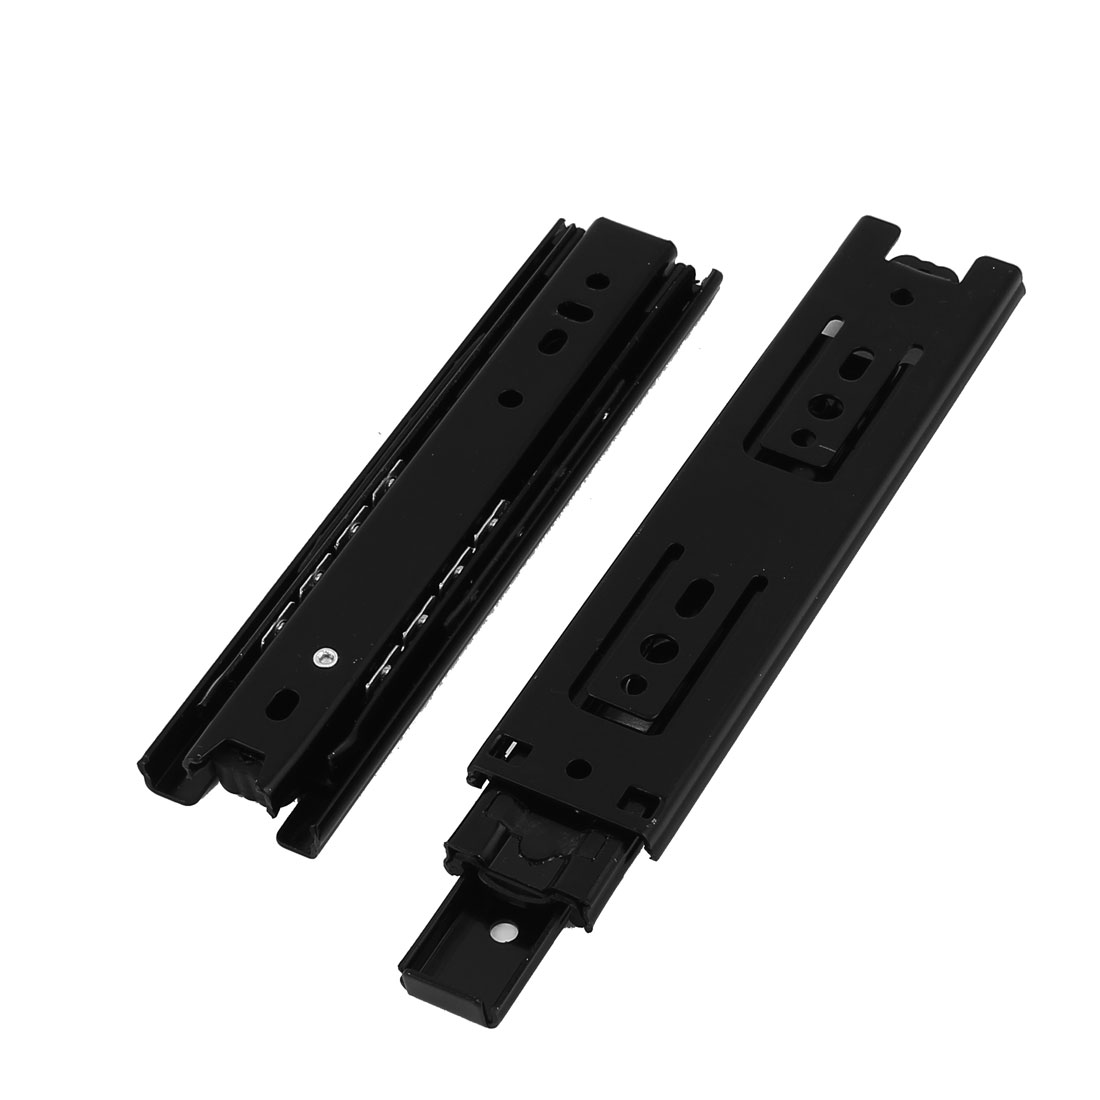 "6"" Black Metal Ball Bearing Telescopic Drawer Slide Rail Brackets 2pcs"